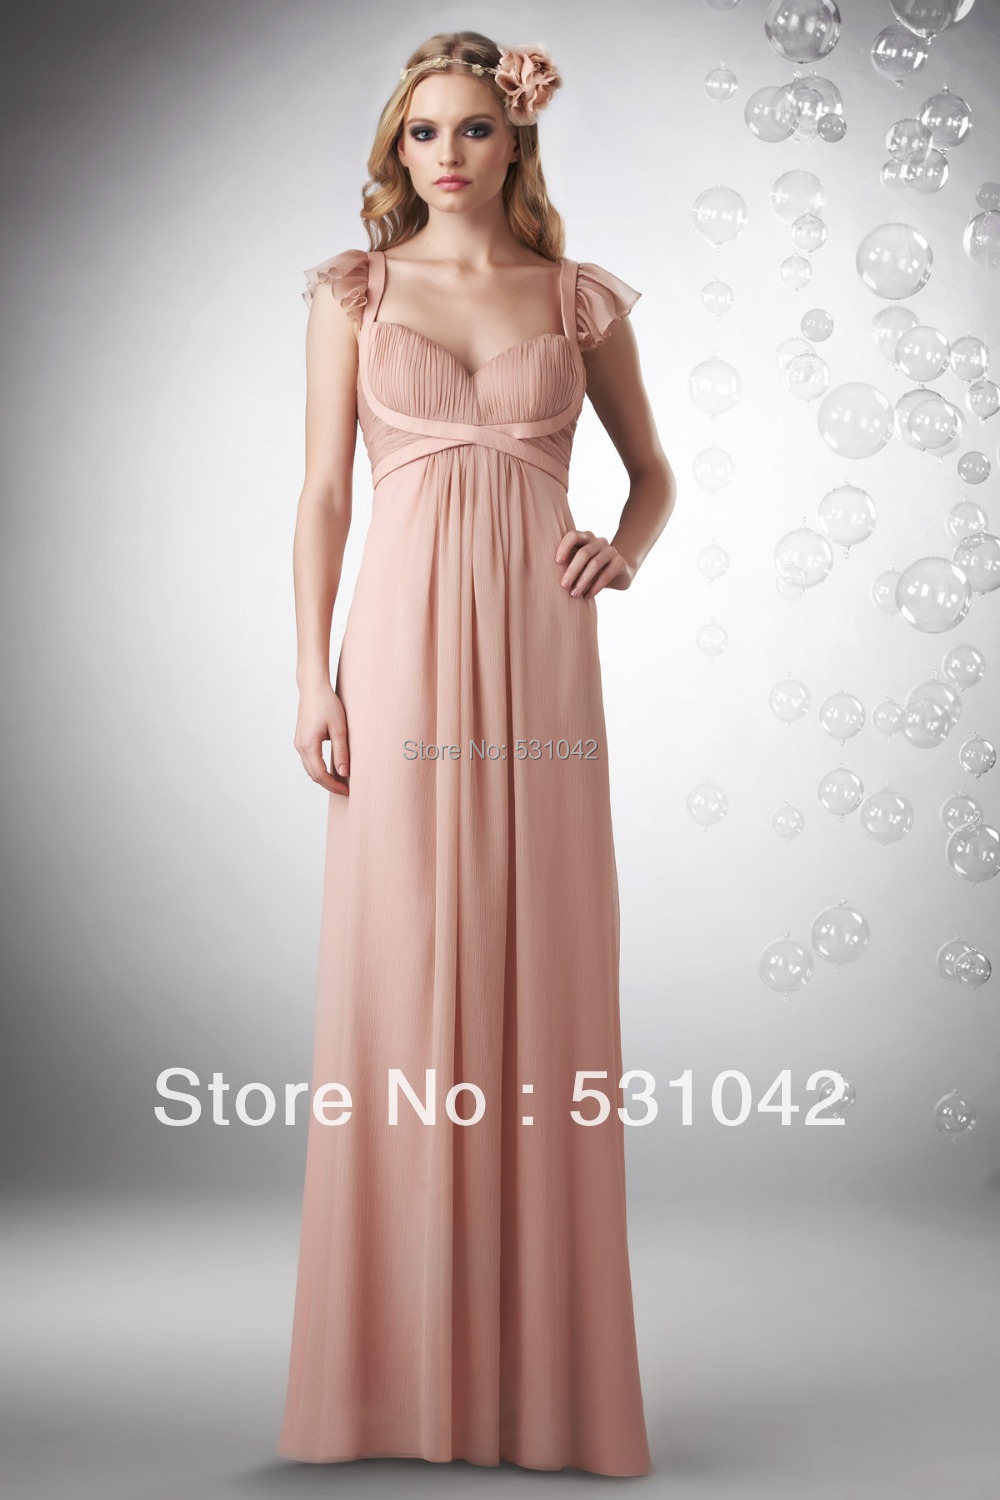 Chiffon Full Length Long